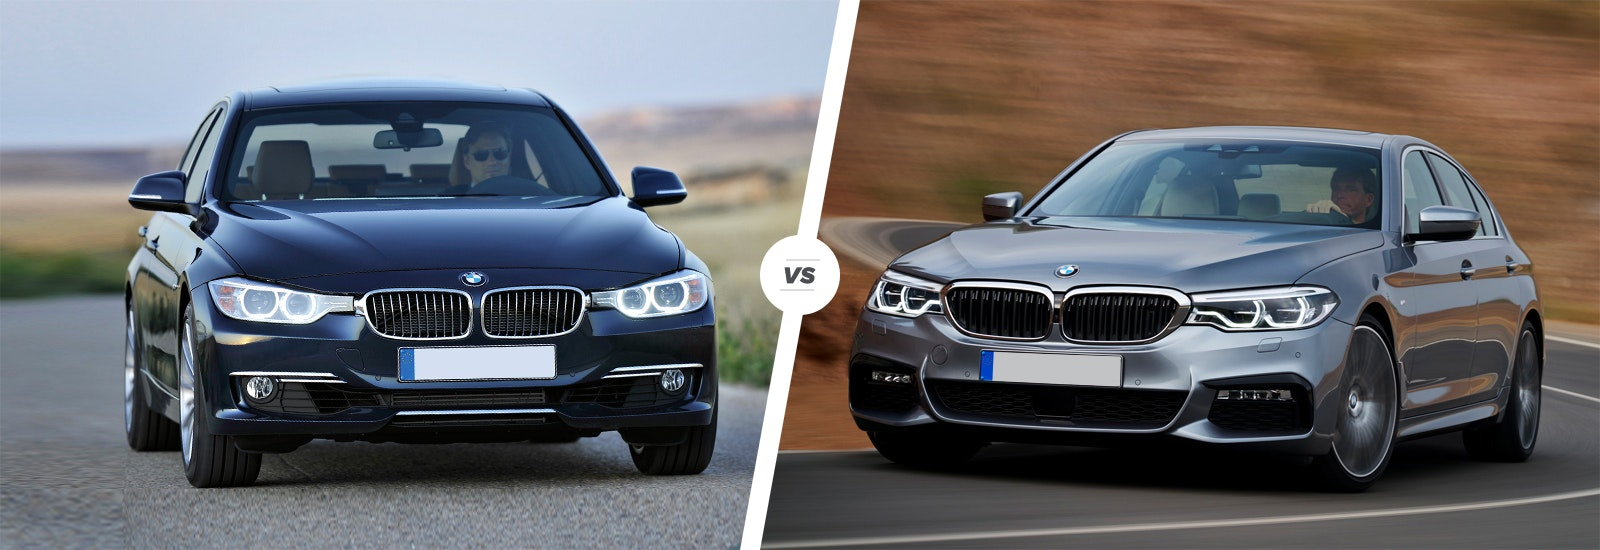 BMW 3 Series On The Left, BMW 5 Series On The Right